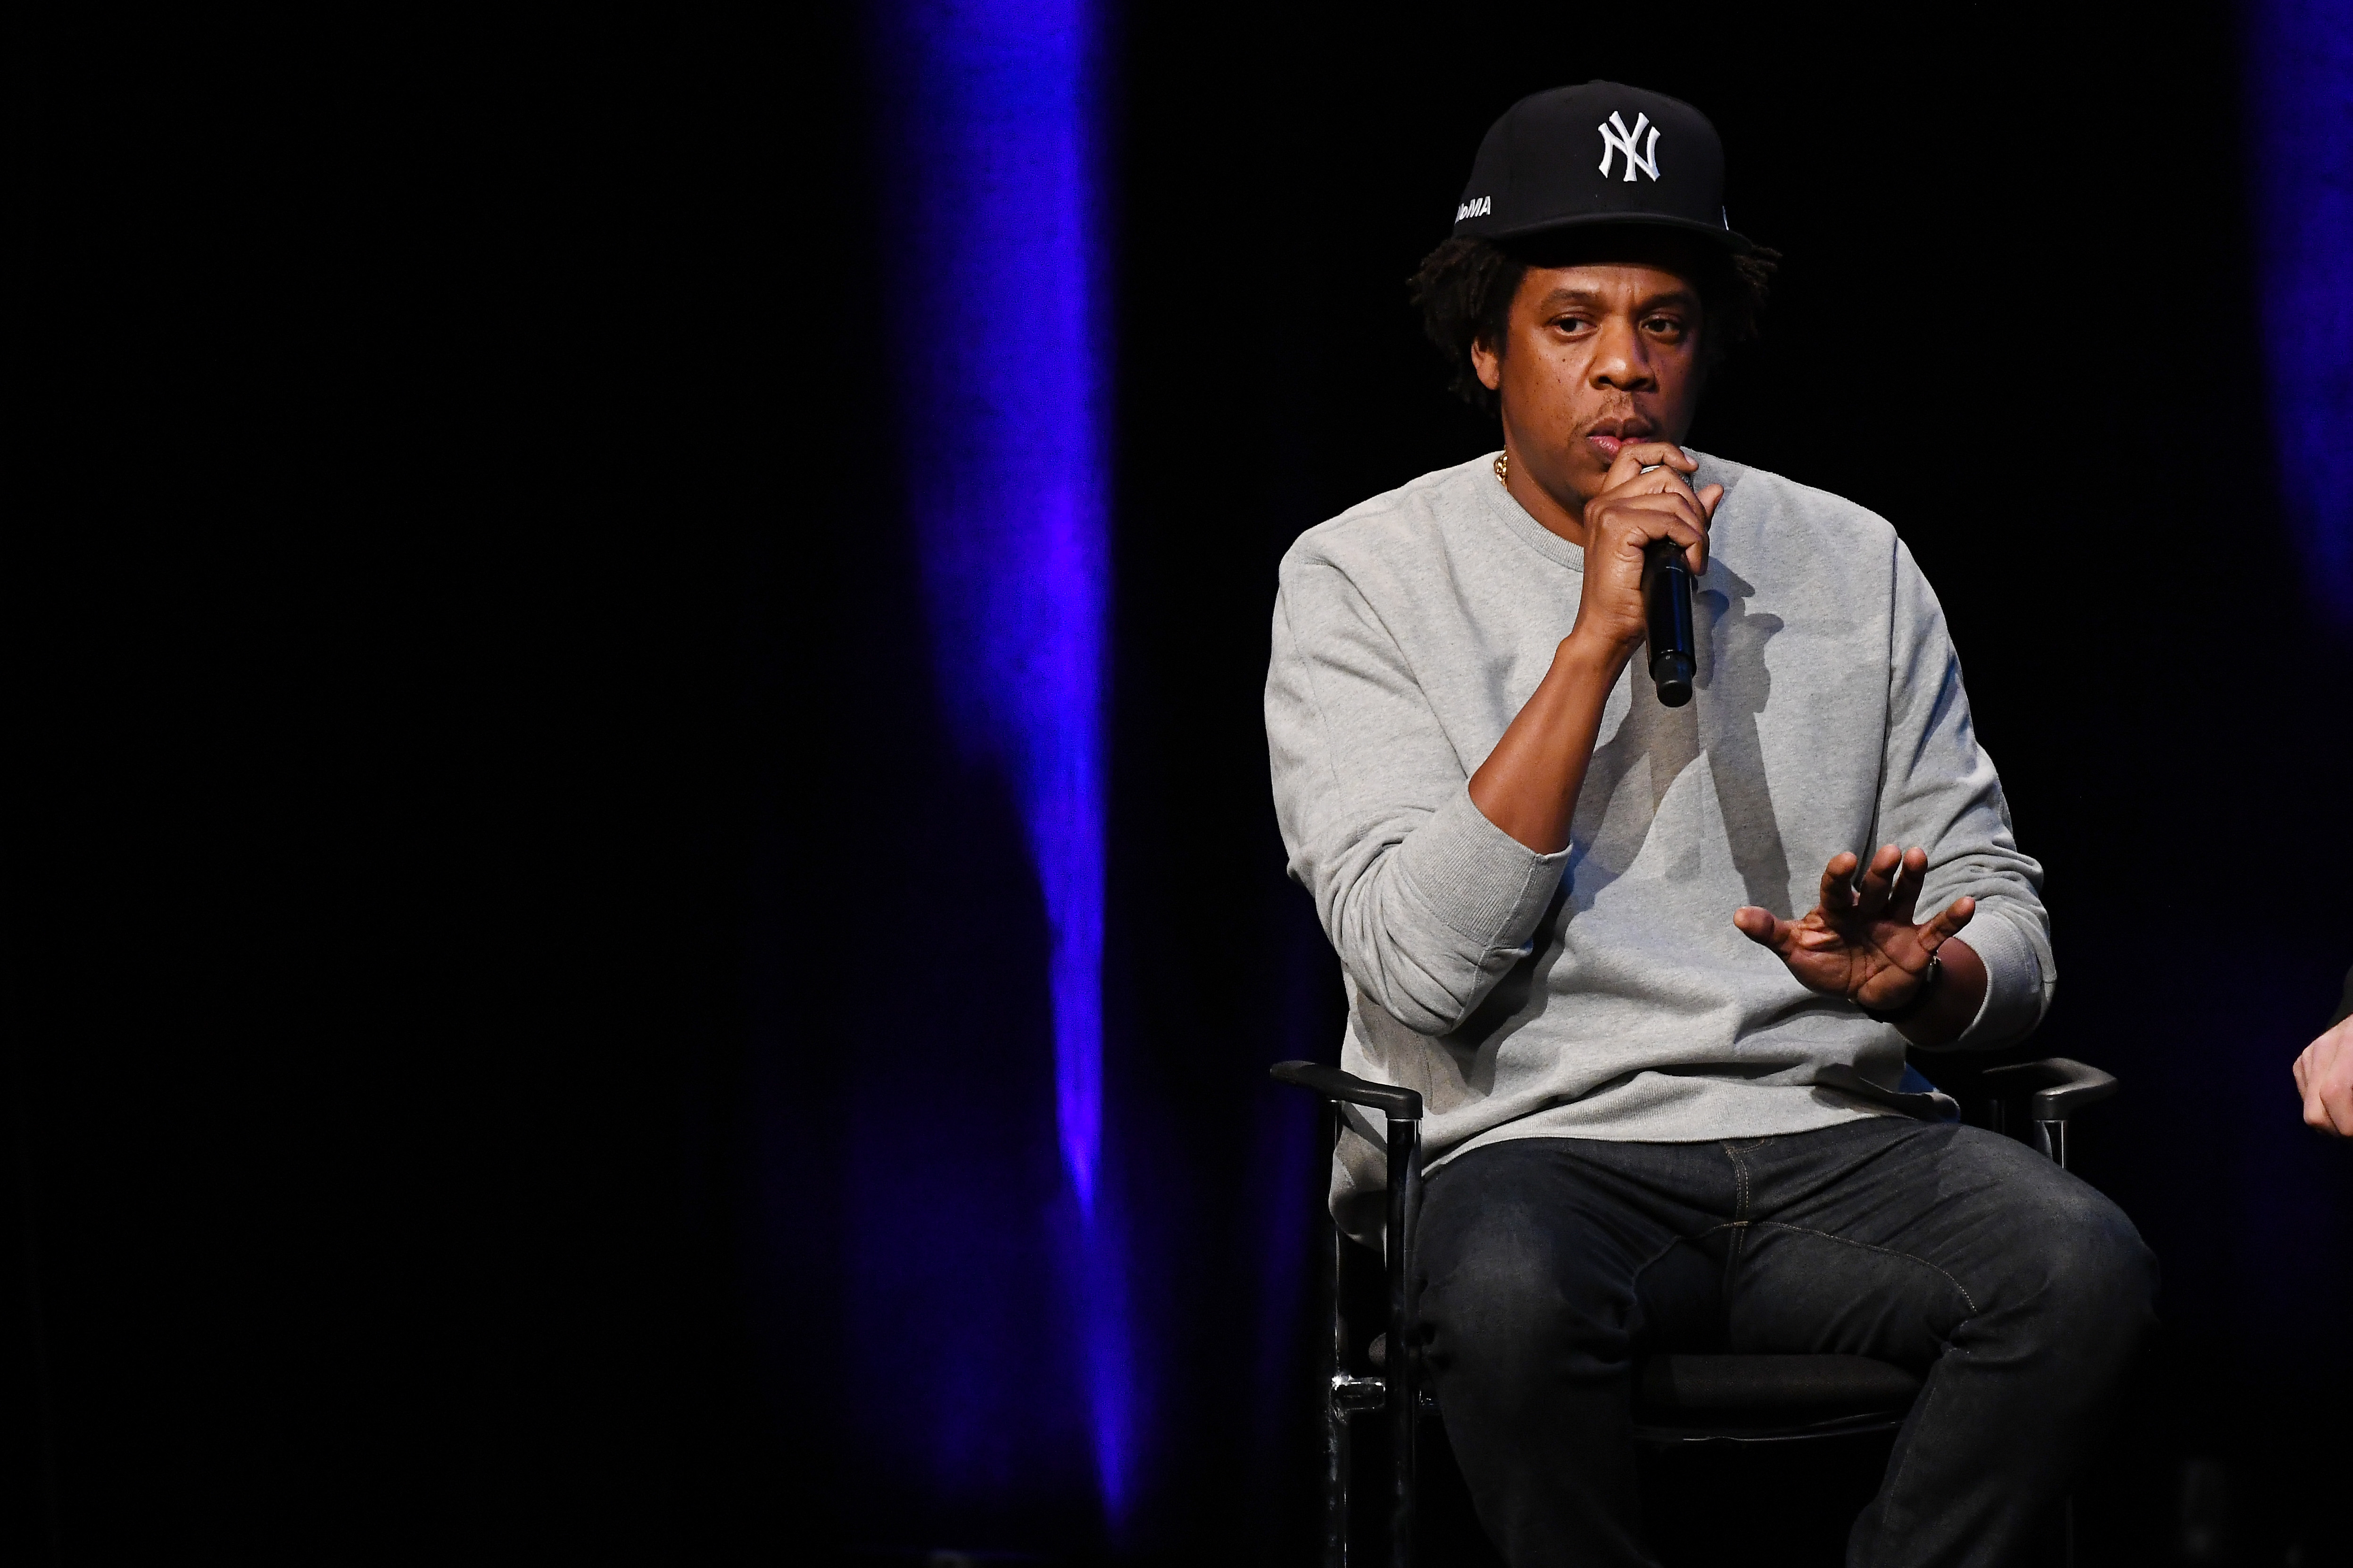 Jay-Z Is Re-opening New York's Iconic Webster Hall With A 'B-Sides' Show